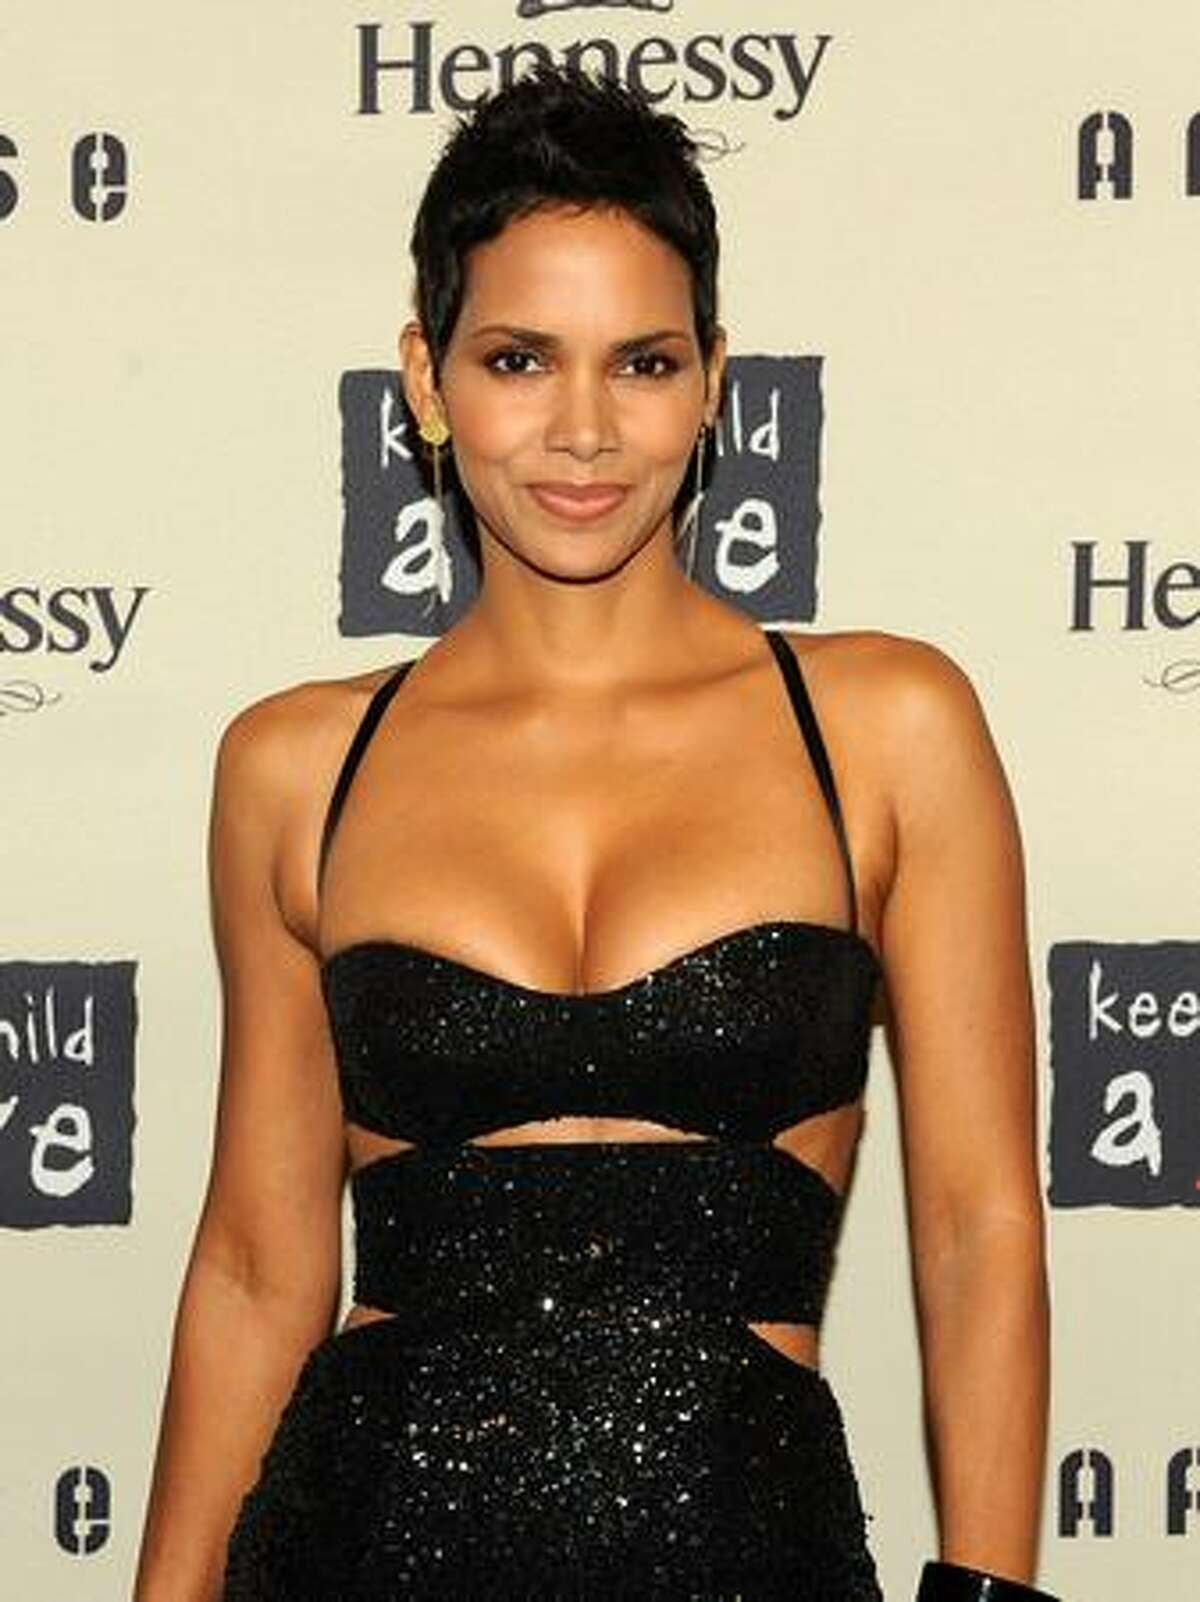 Actress Halle Berry attends Keep A Child Alive's 6th Annual Black Ball at Hammerstein Ballroom in New York City.